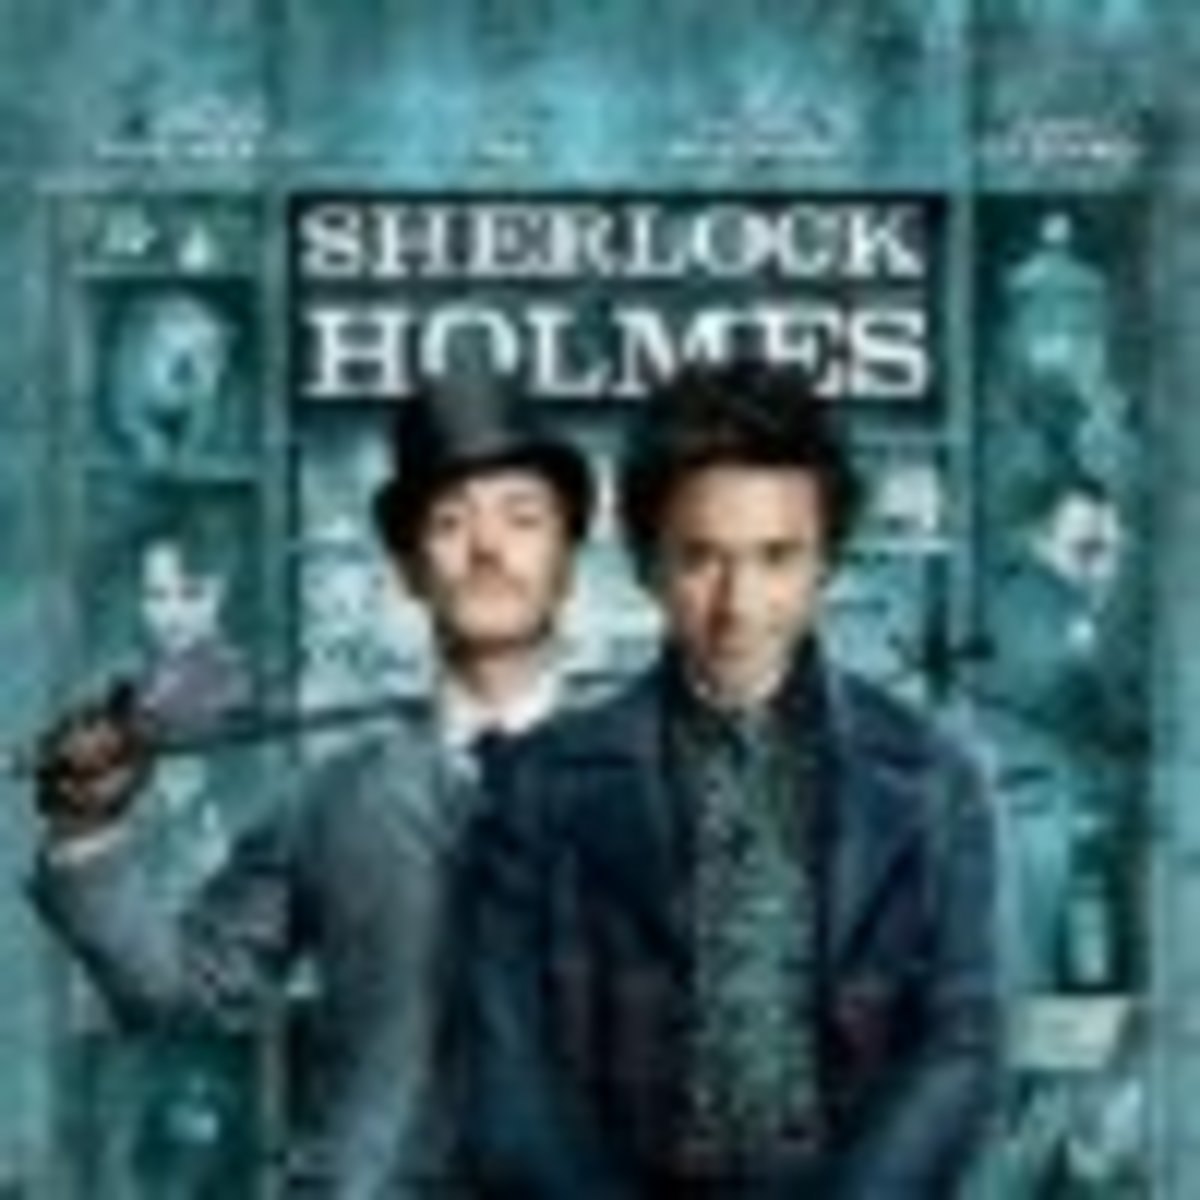 Sherlock Holmes film review photo credit: imdb.com